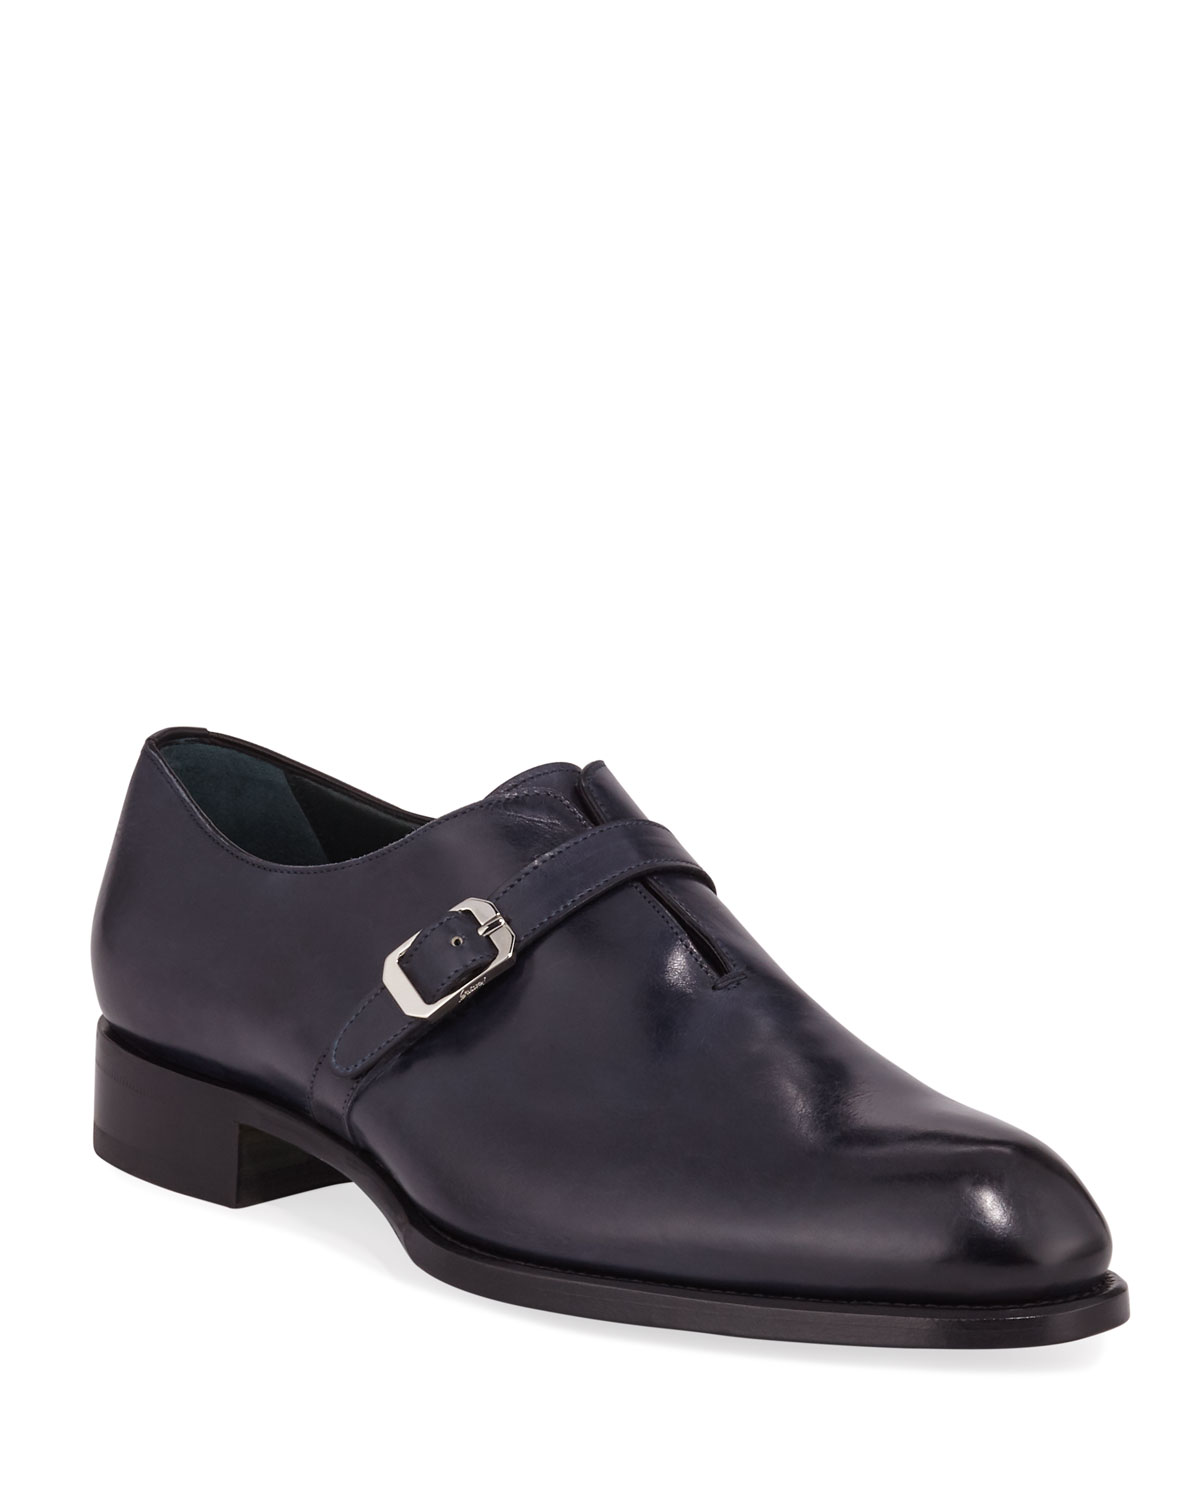 Brioni Loafers MEN'S BENEDICT MONK-STRAP LOAFERS